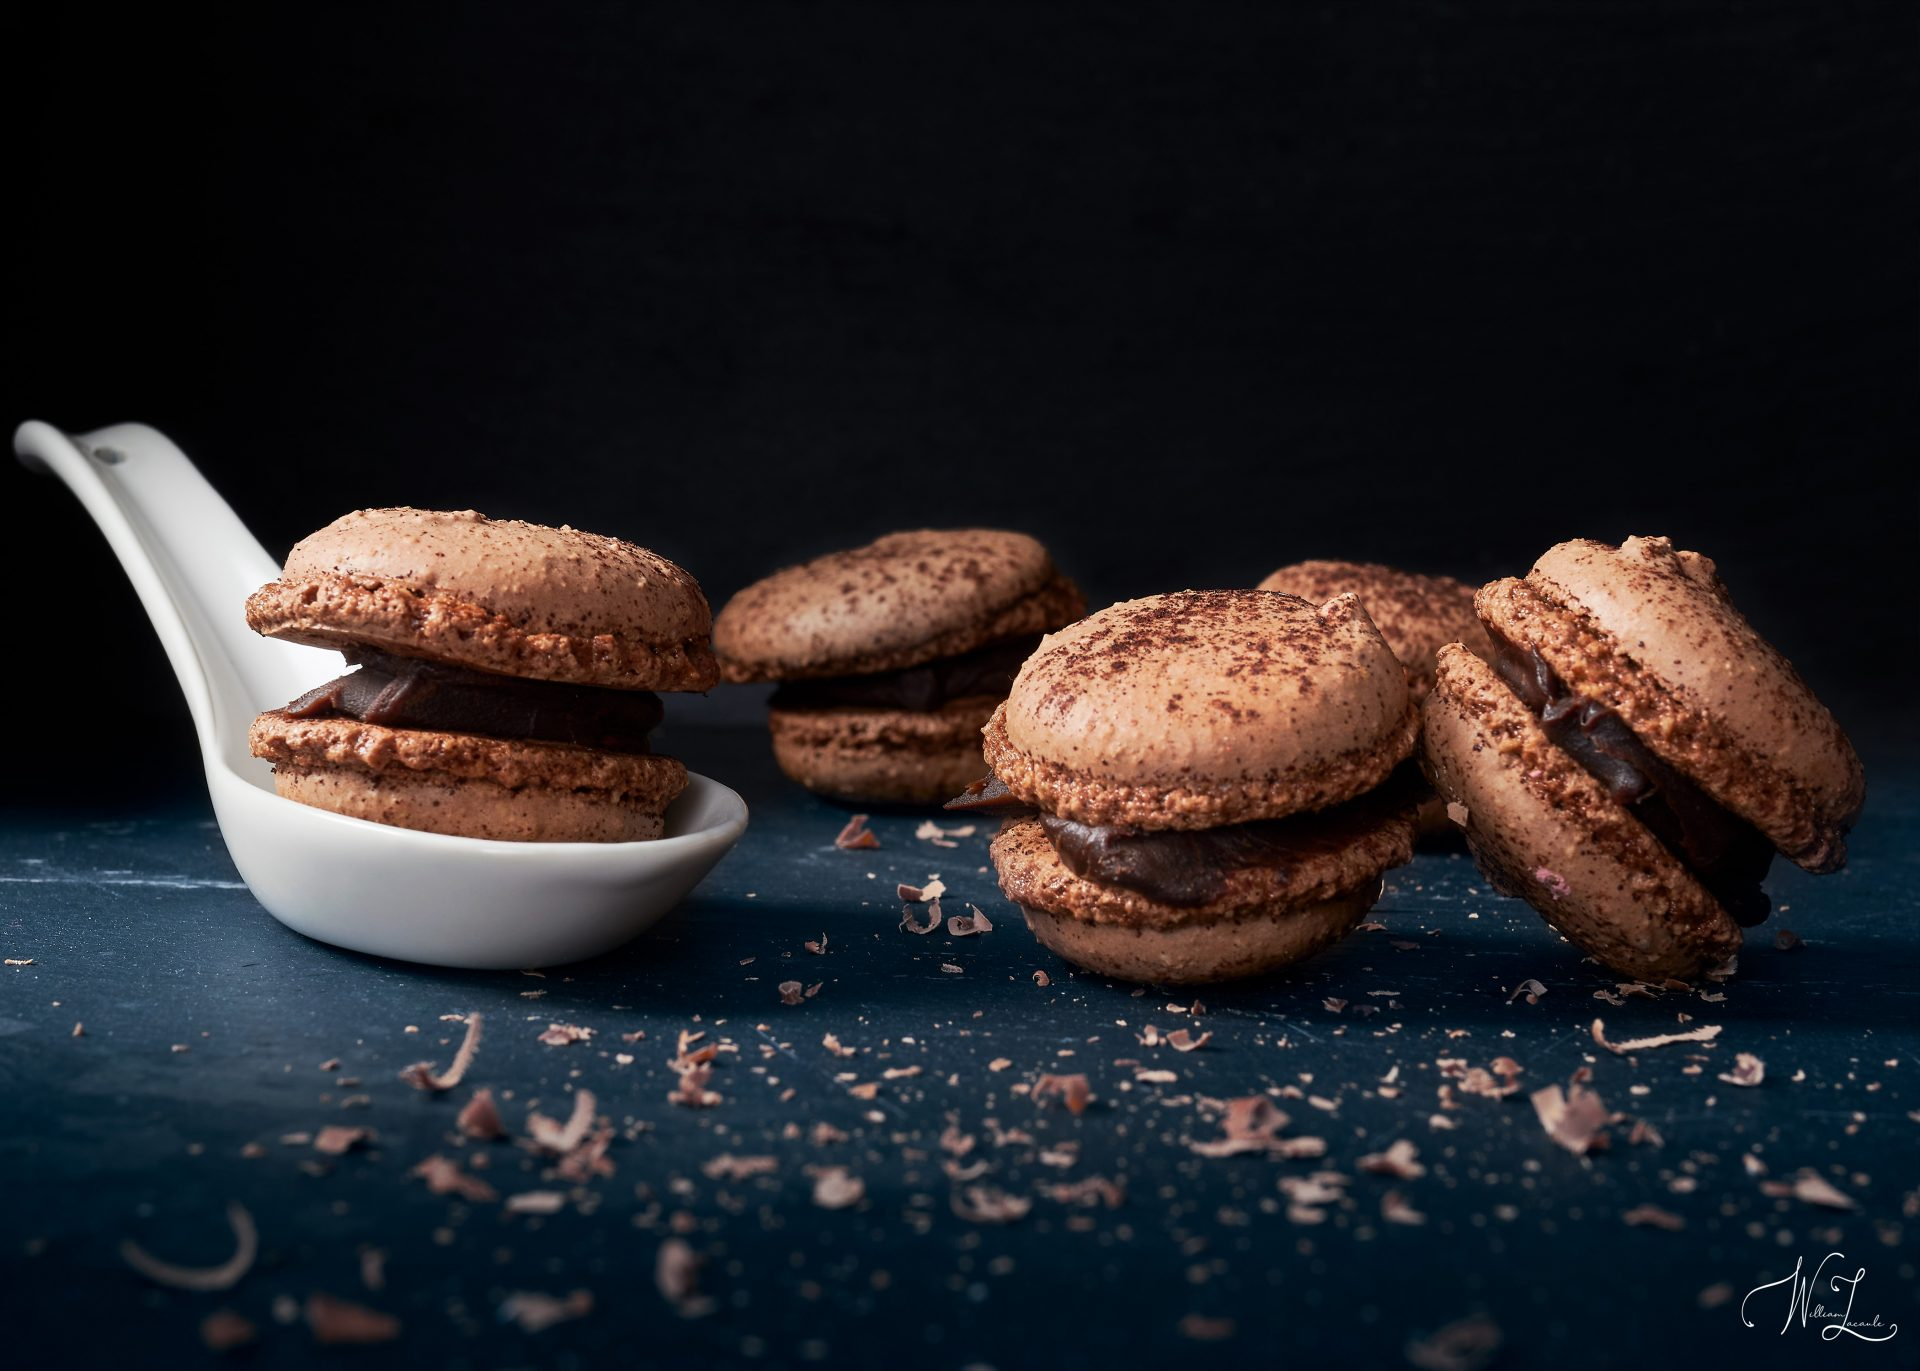 Corporate_Culinaire_Patisserie_Macarons